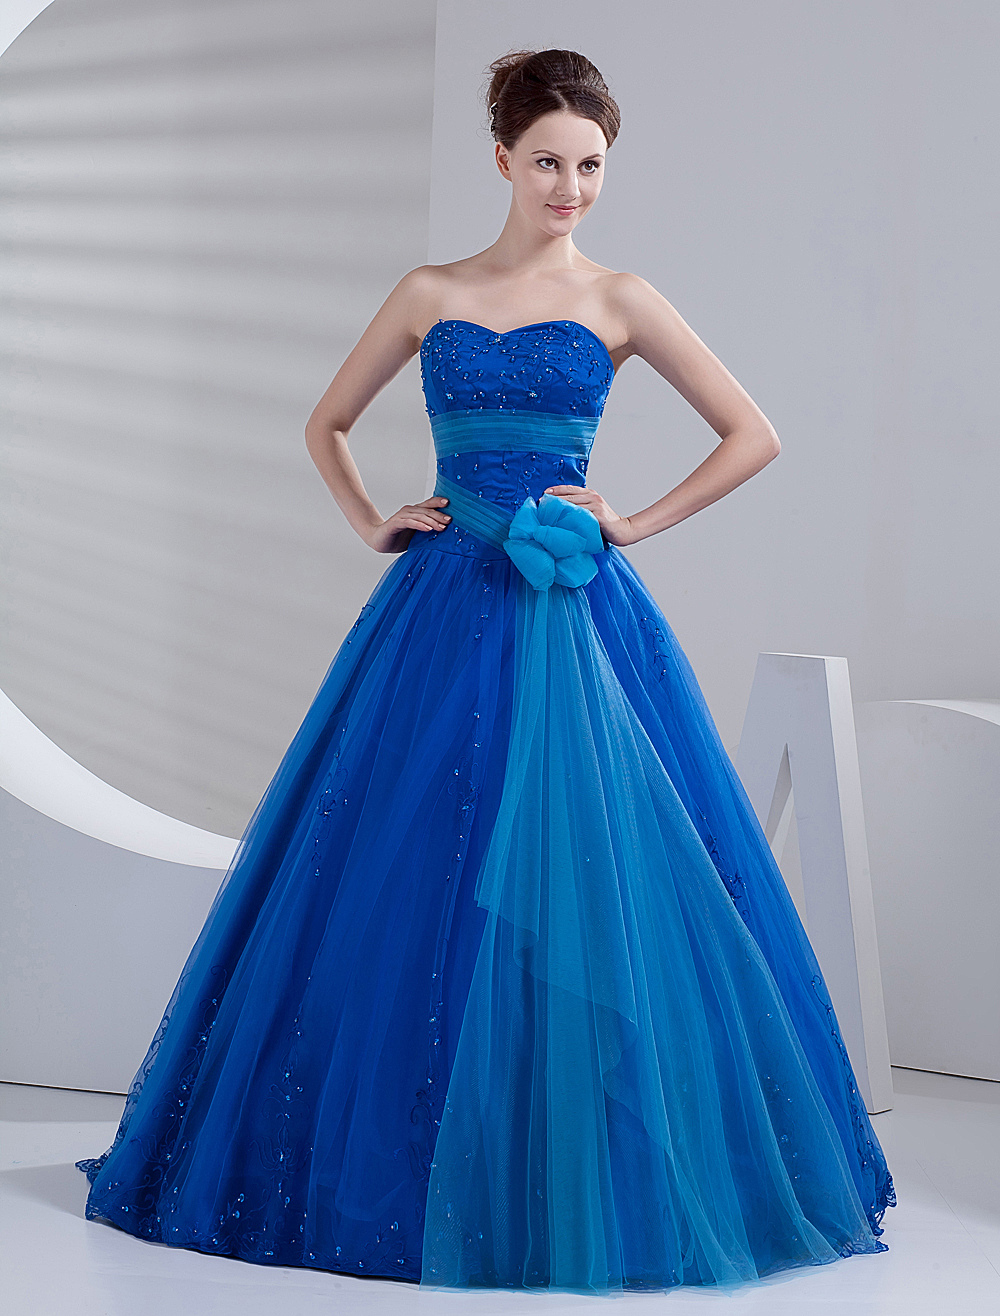 Elegant Ball Gown Royal Blue Tulle Quinceanera Dress